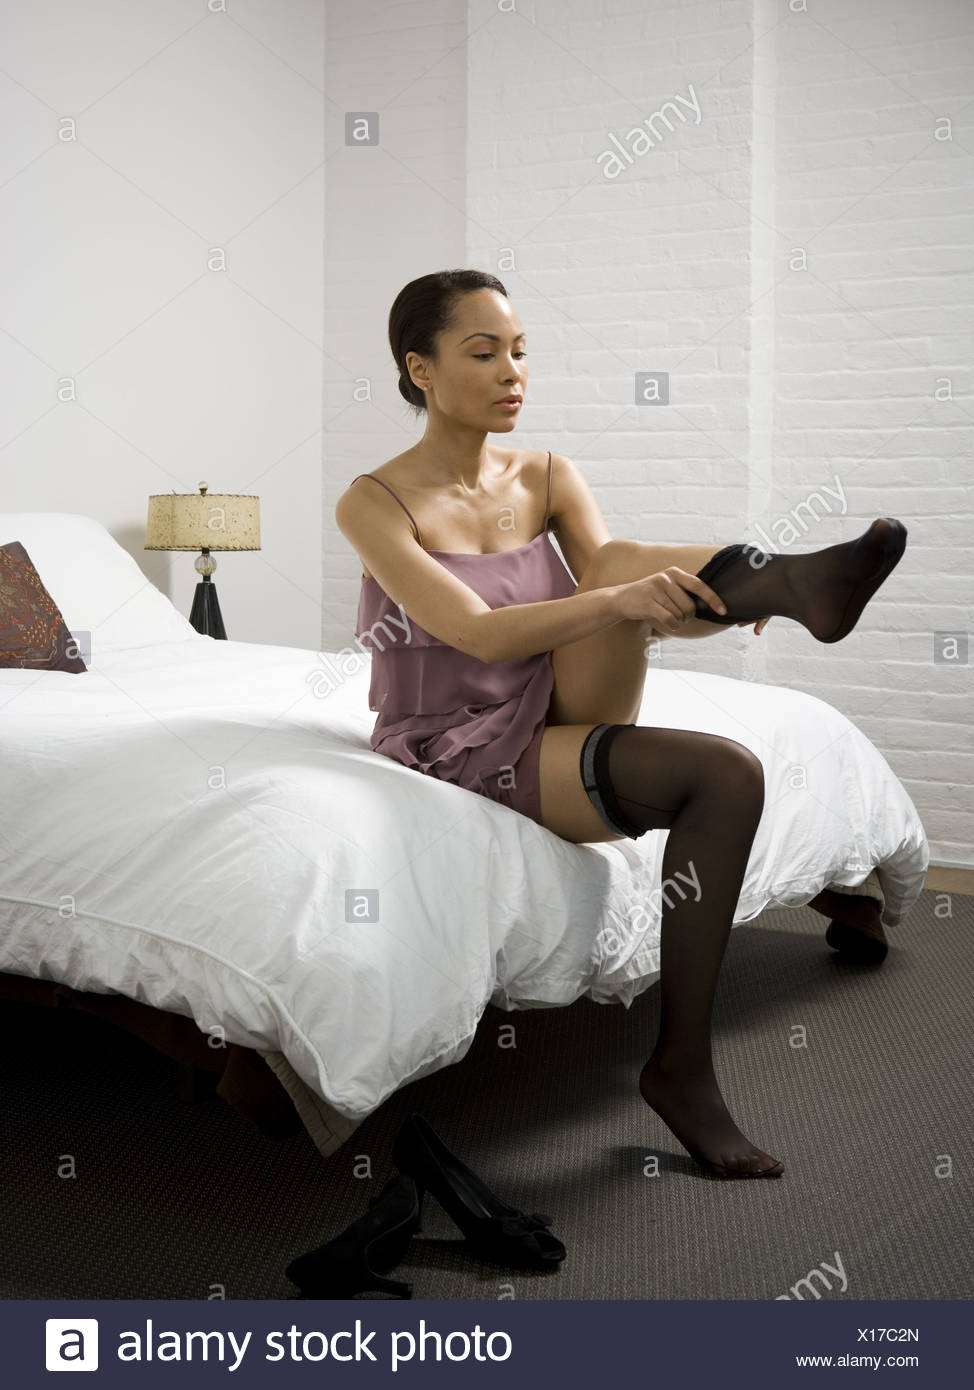 Thigh Highs Stock Photos & Thigh Highs Stock Images